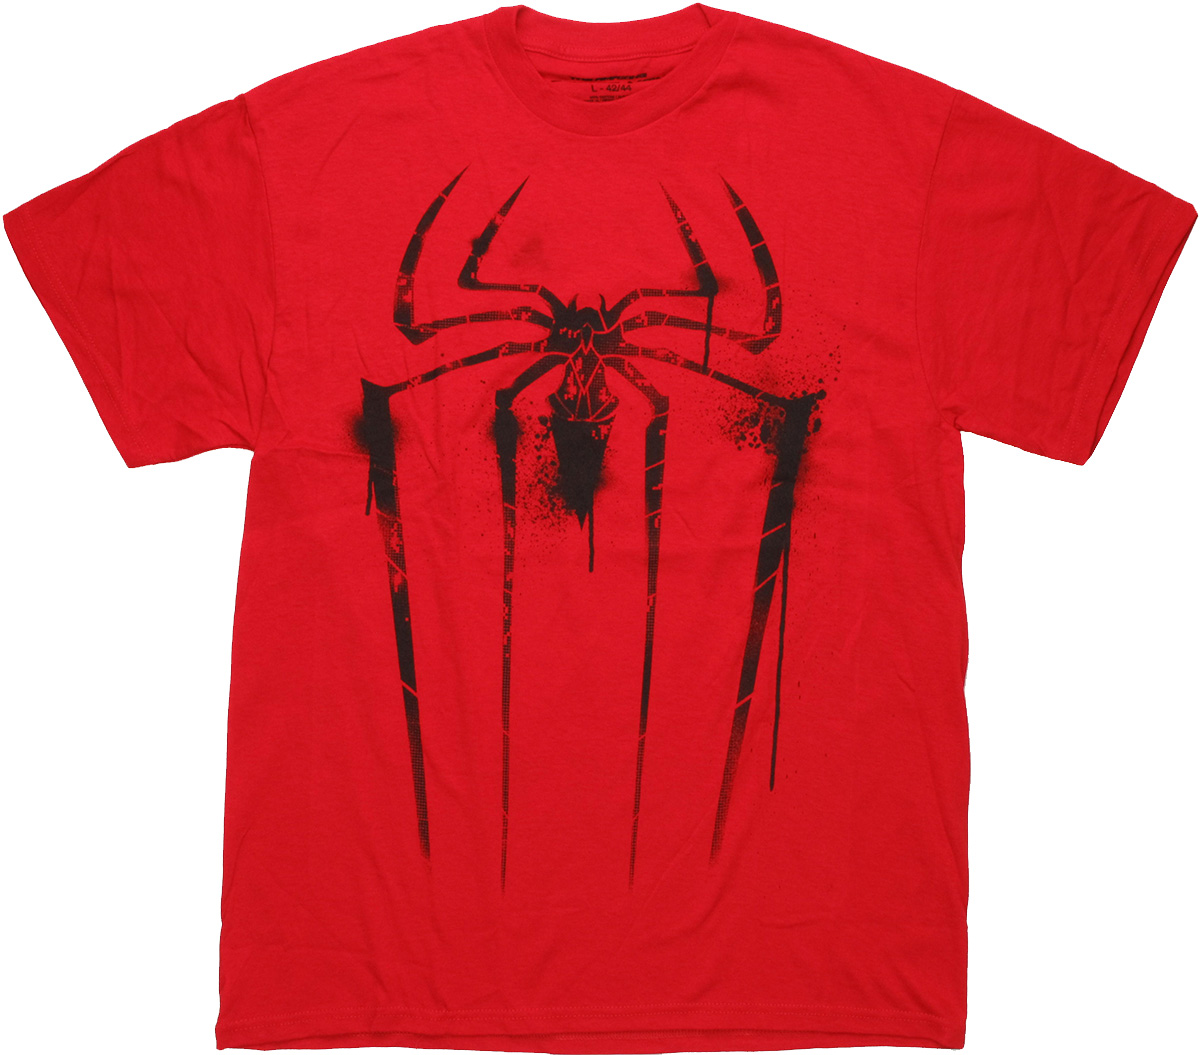 spiderman logo infested red spray t shirt. Black Bedroom Furniture Sets. Home Design Ideas